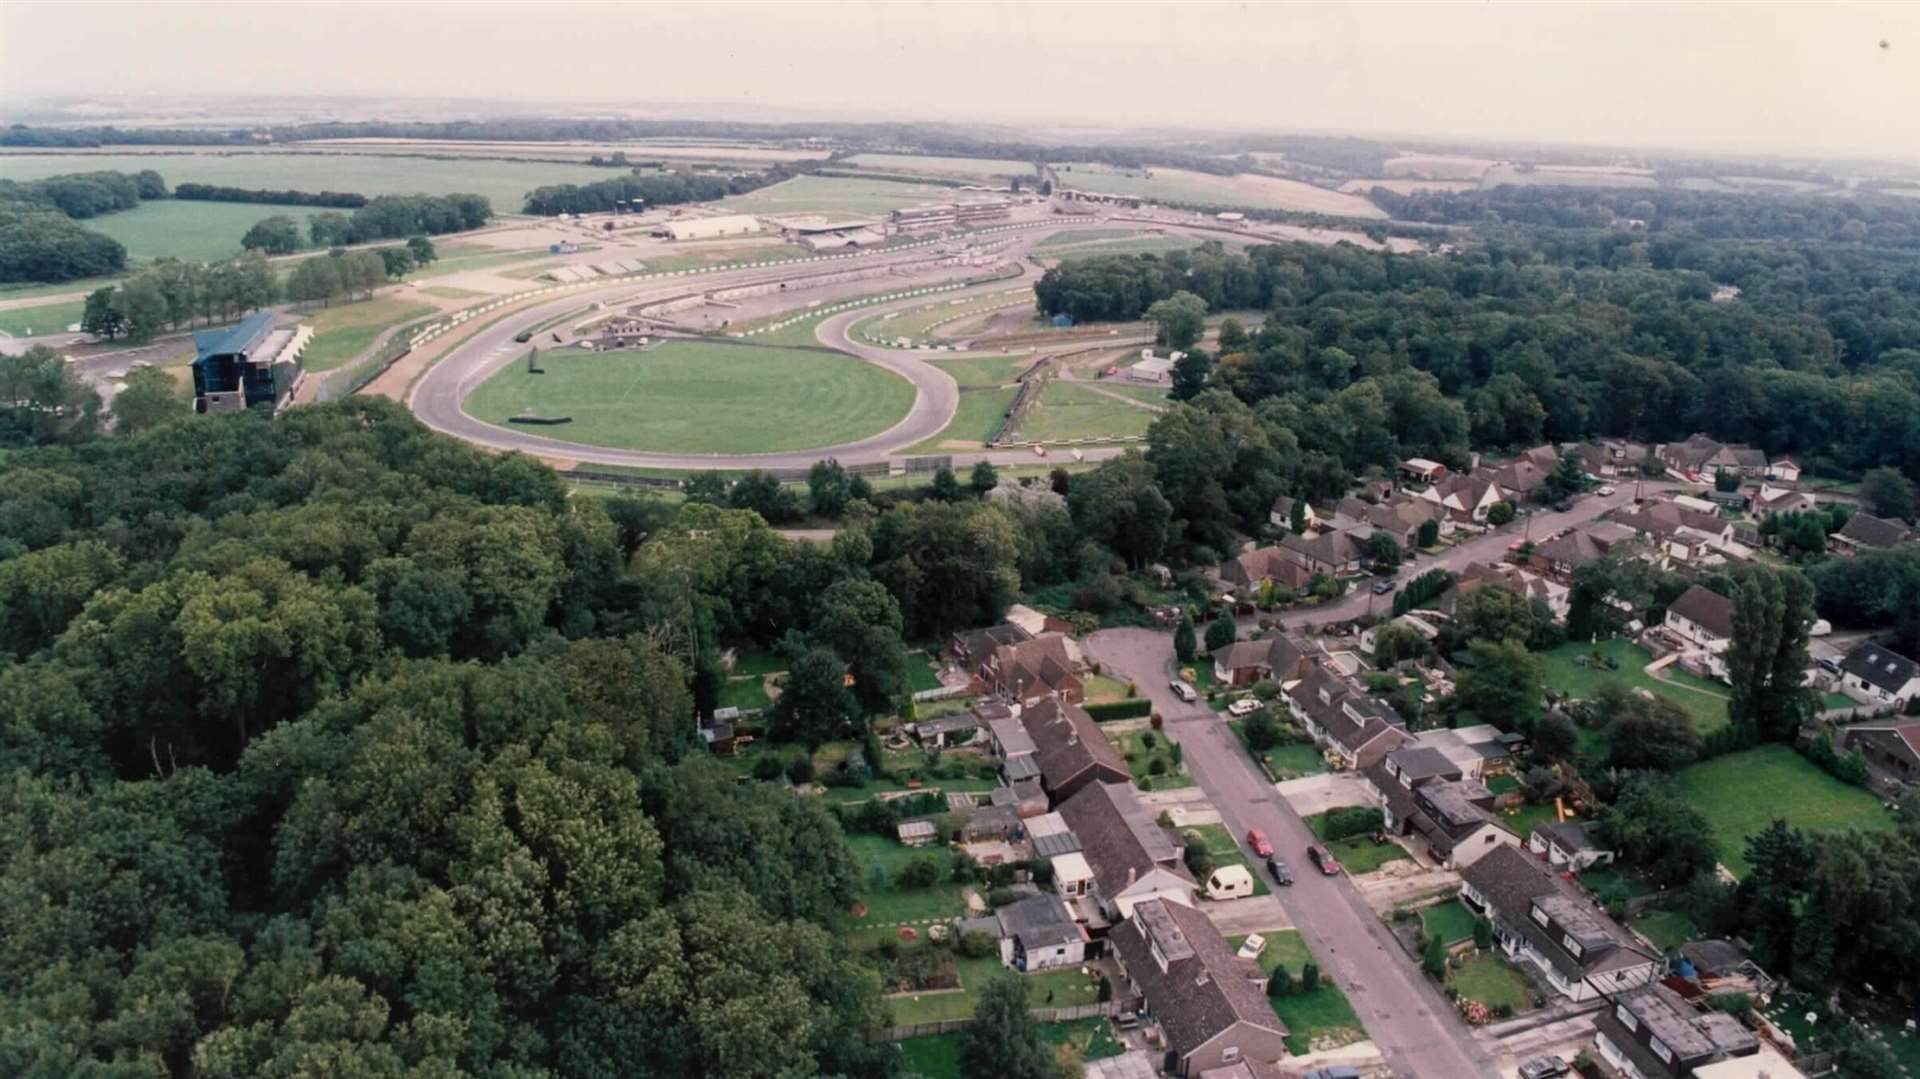 An aerial view of Brands Hatch from 1992, with part of West Kingsdown in the foreground